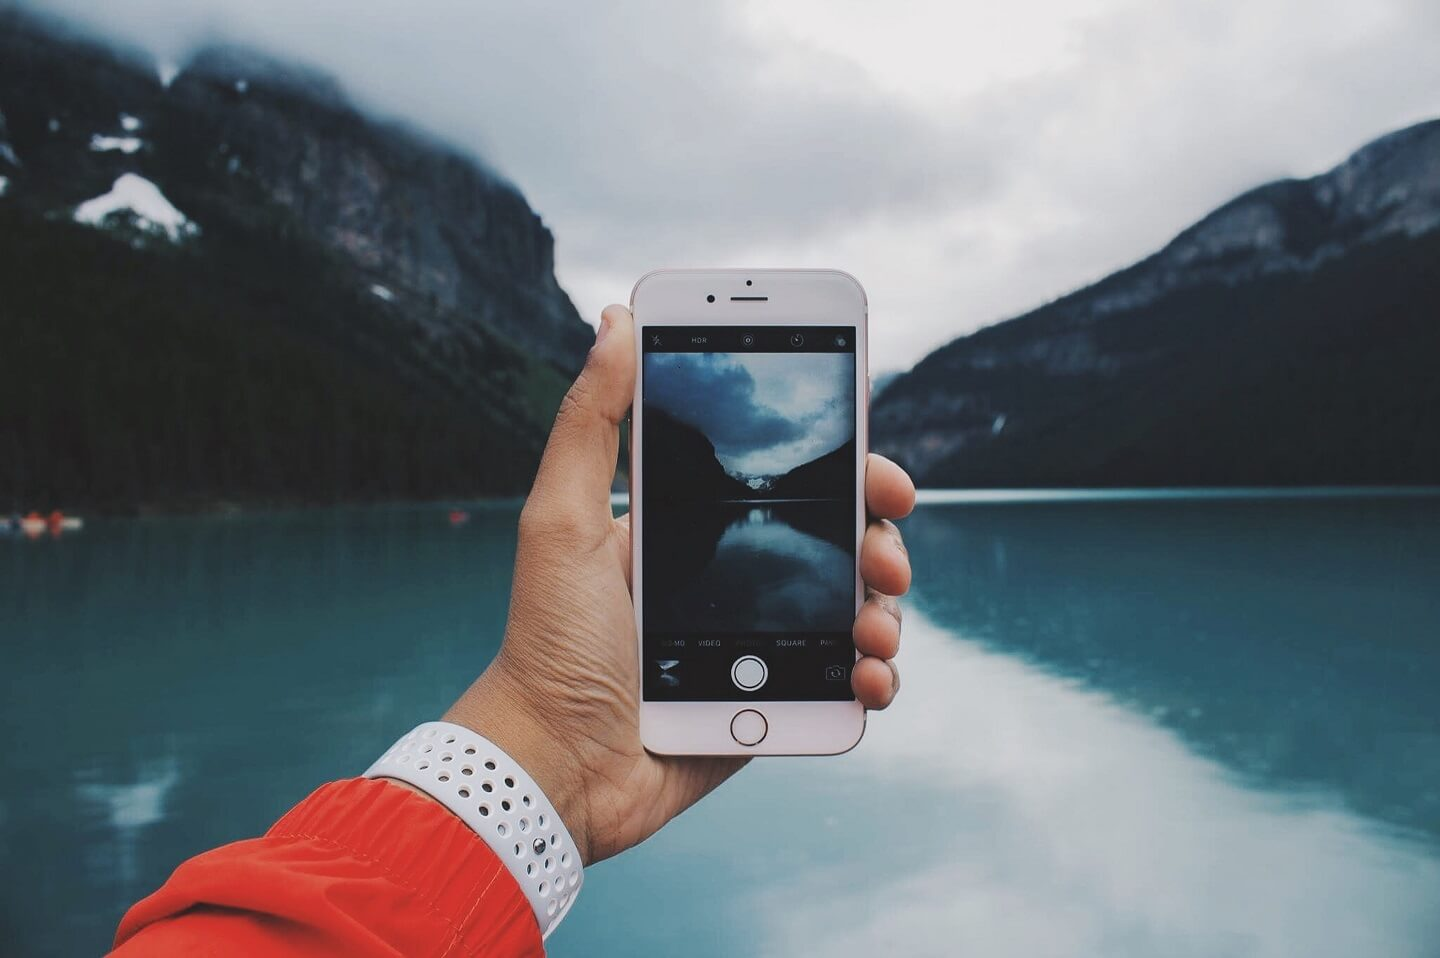 Someone holding an iPhone taking a picture of a lake and mountains